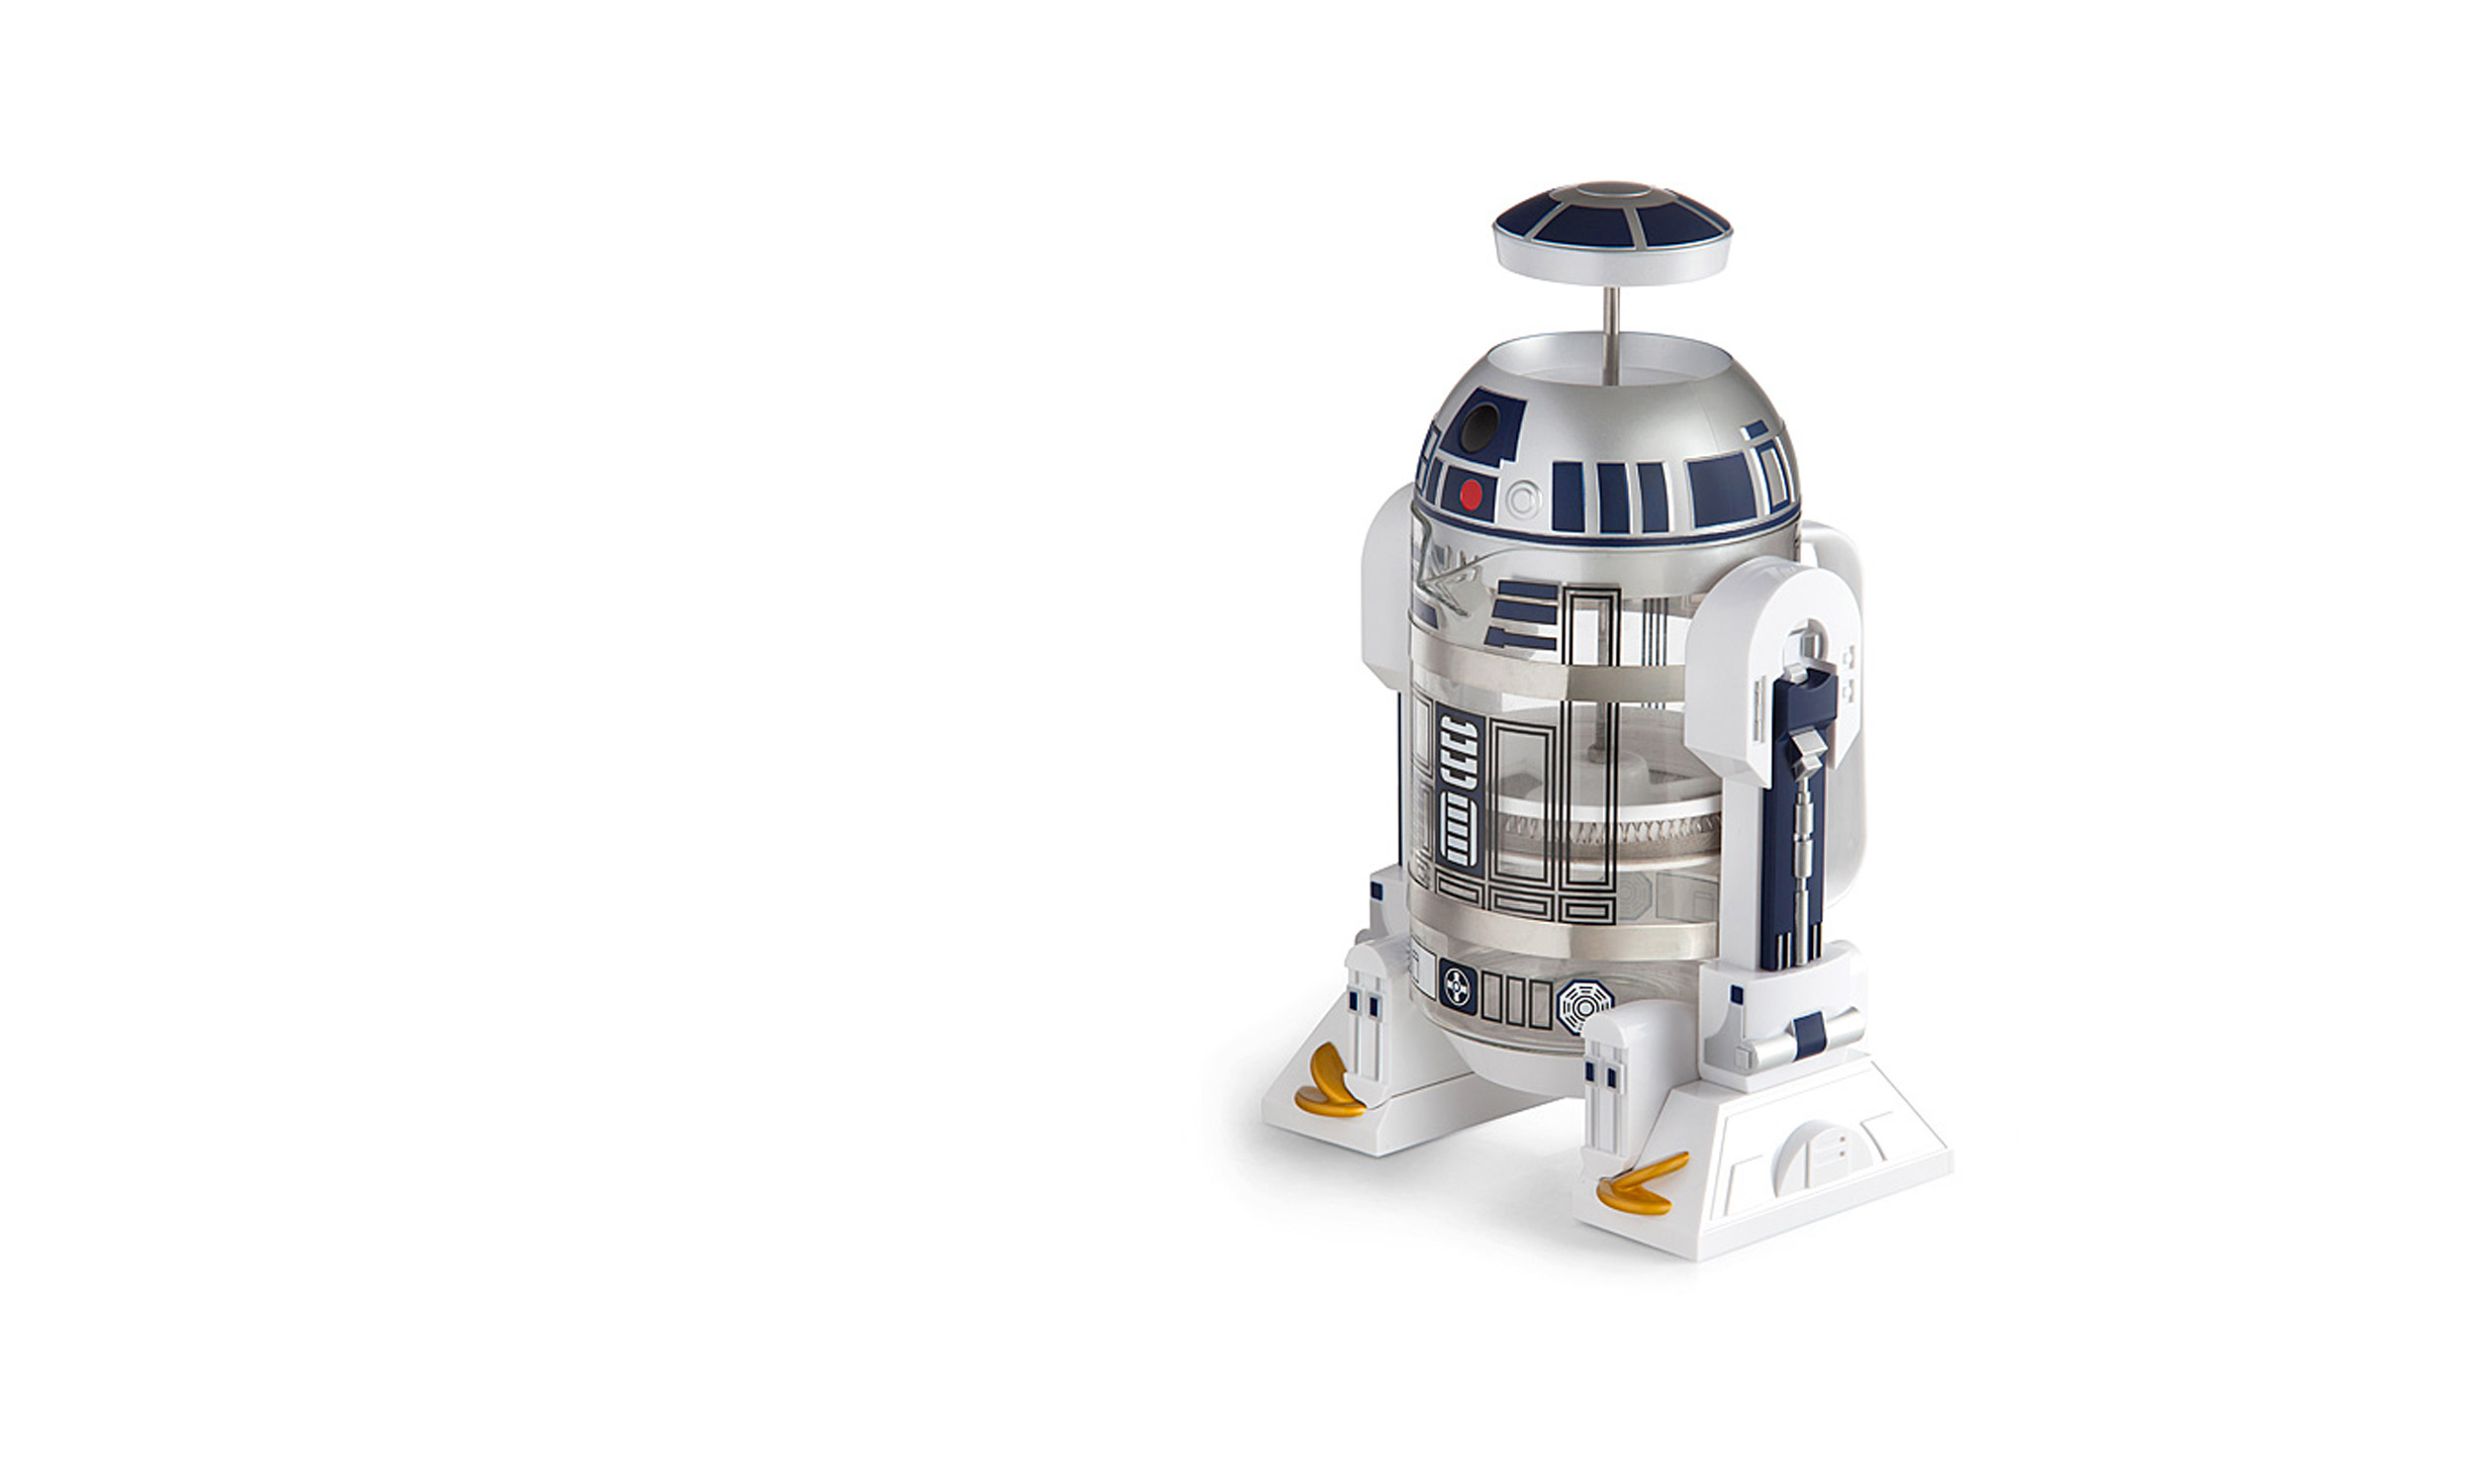 field-image-r2d2-french-press-hero